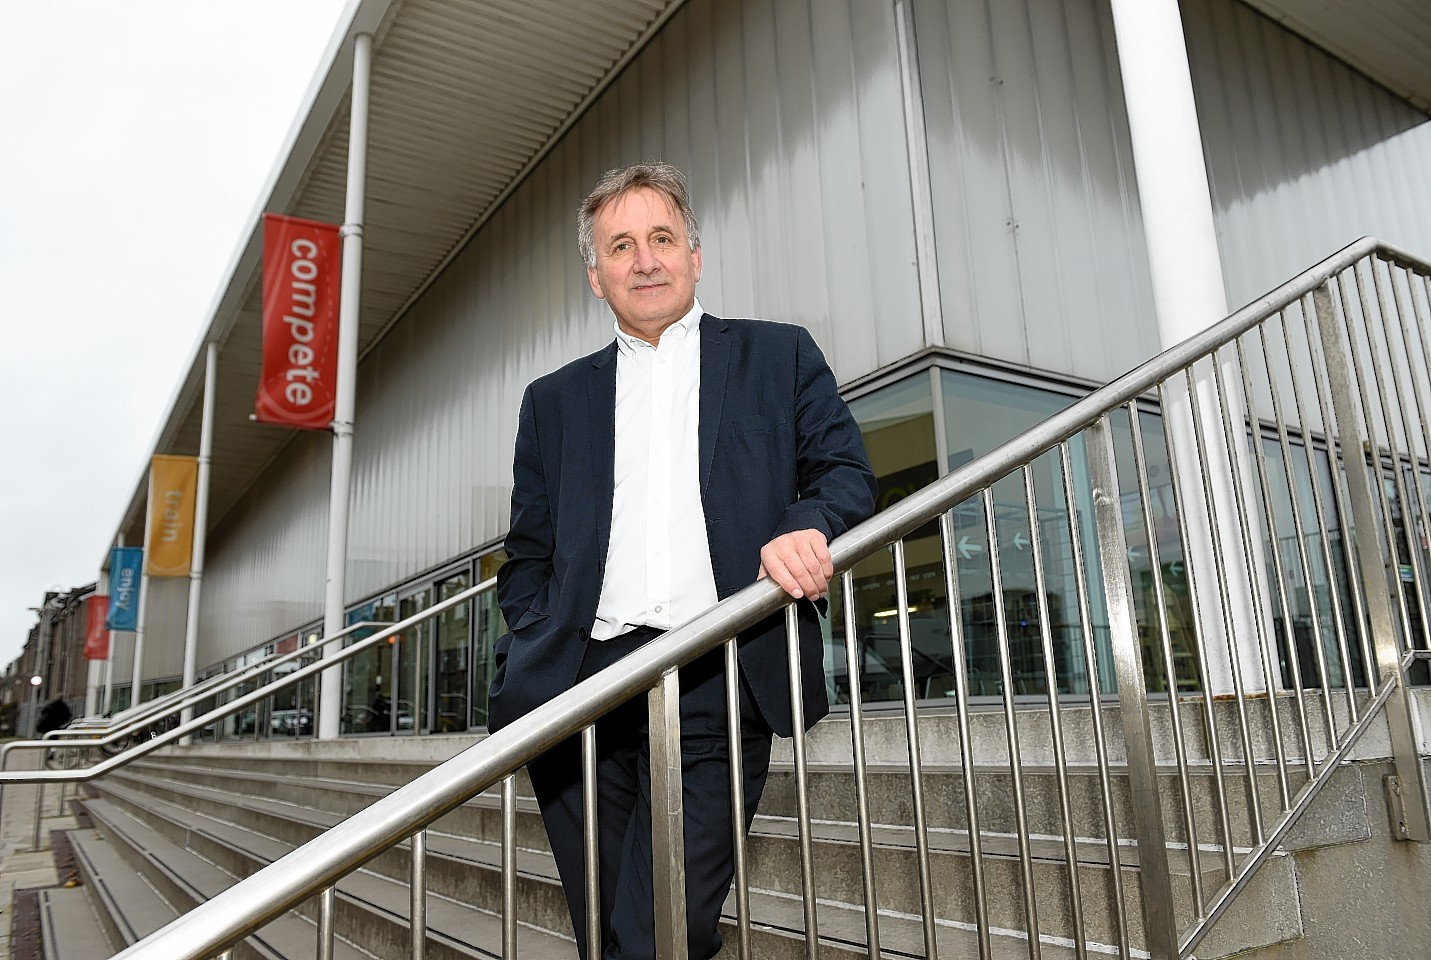 George Yule outside Aberdeen Sports Village following the news he is to step down. Picture by Kevin Emslie